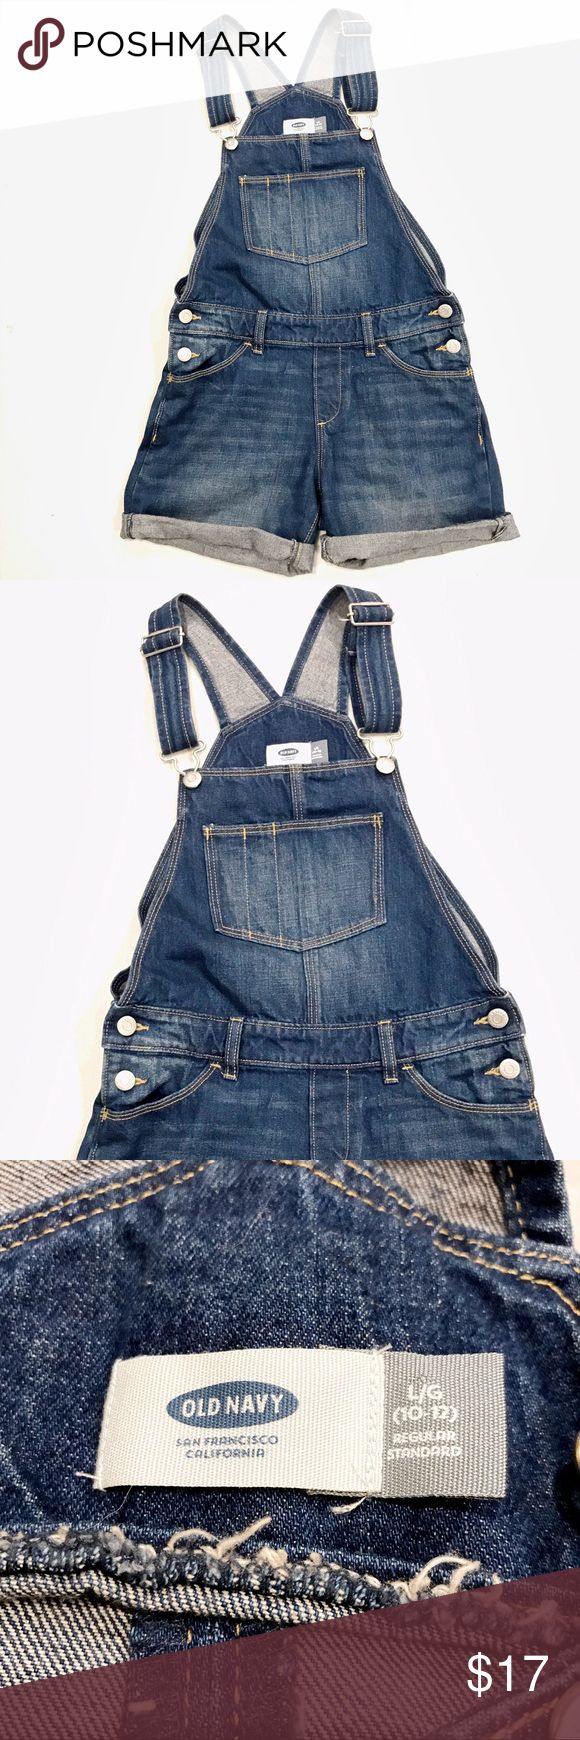 Old Navy  Girl jean overall shorts size L 10-12 Girl jean overall shorts by Old Navy Tag size L 10-12 (juniors)  Very good conditions  No trade no offers Old Navy Bottoms Overalls